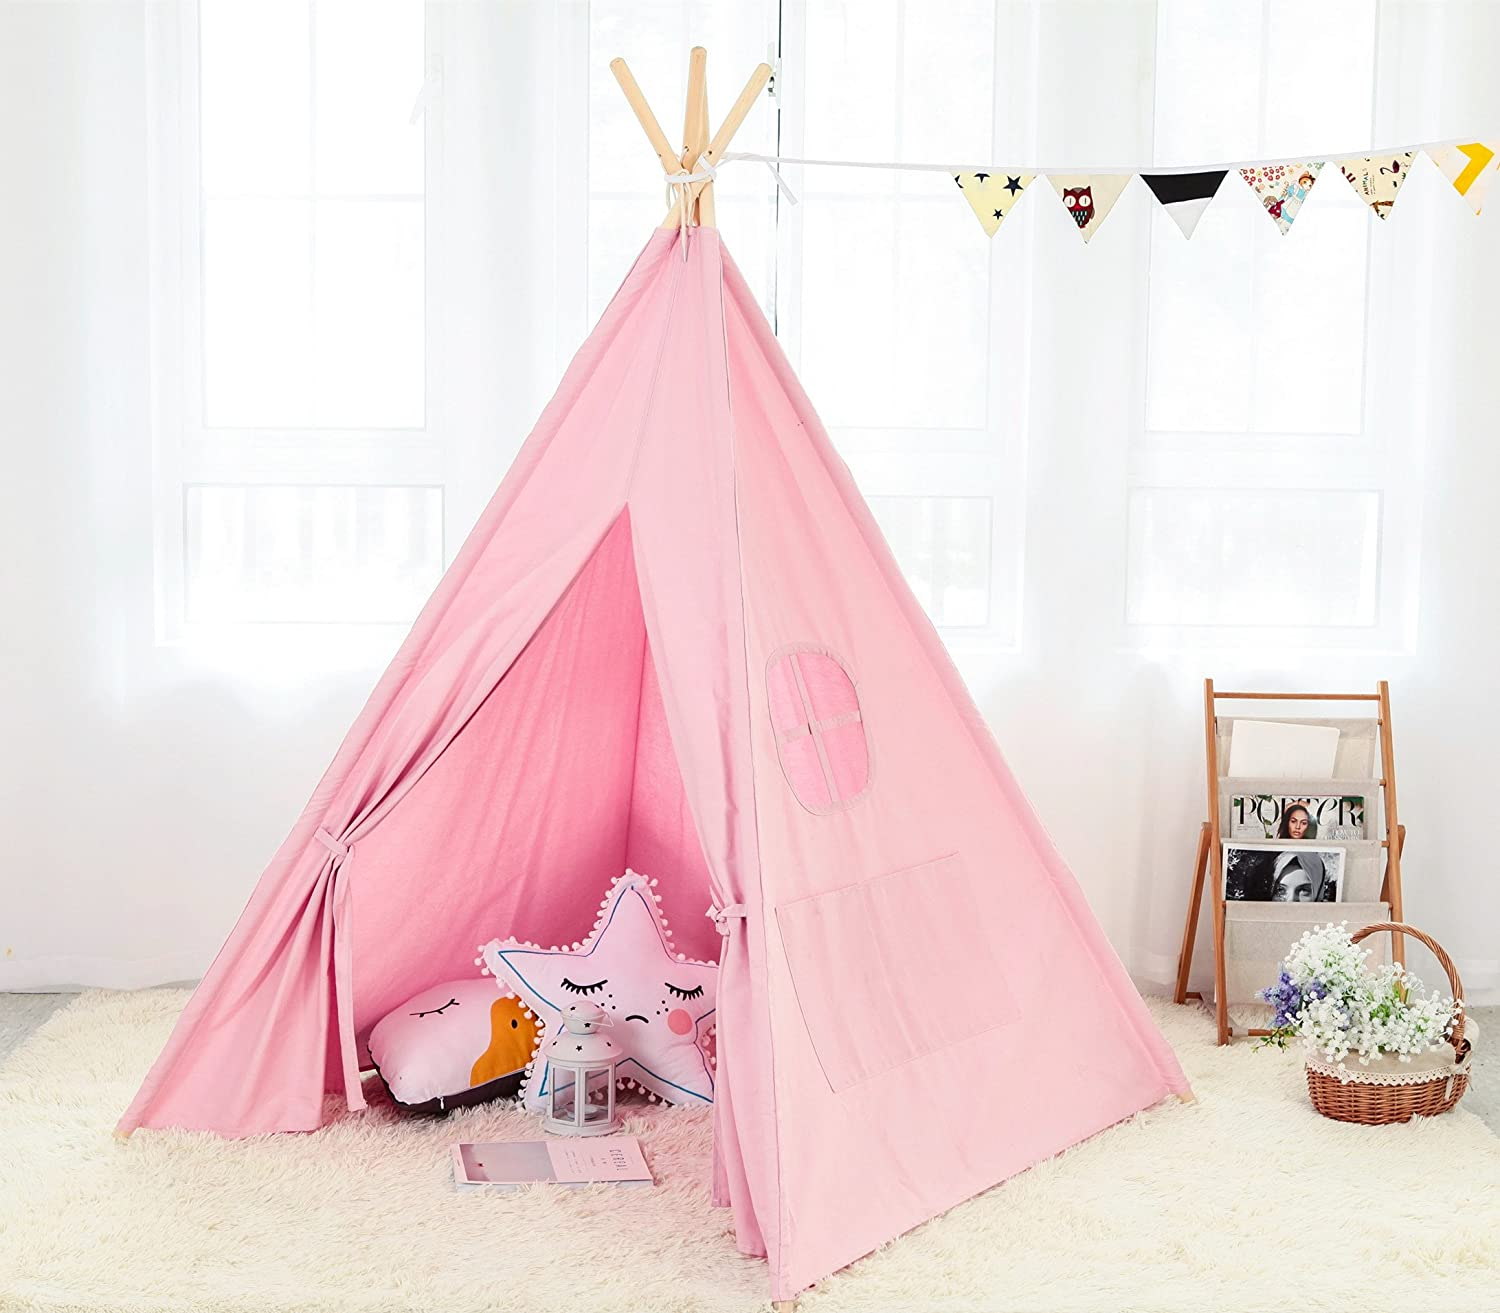 Steegic Outdoor and Indoor Great Canvas Indian Teepee Playhouse for Kids, Pink PinkTeepee03